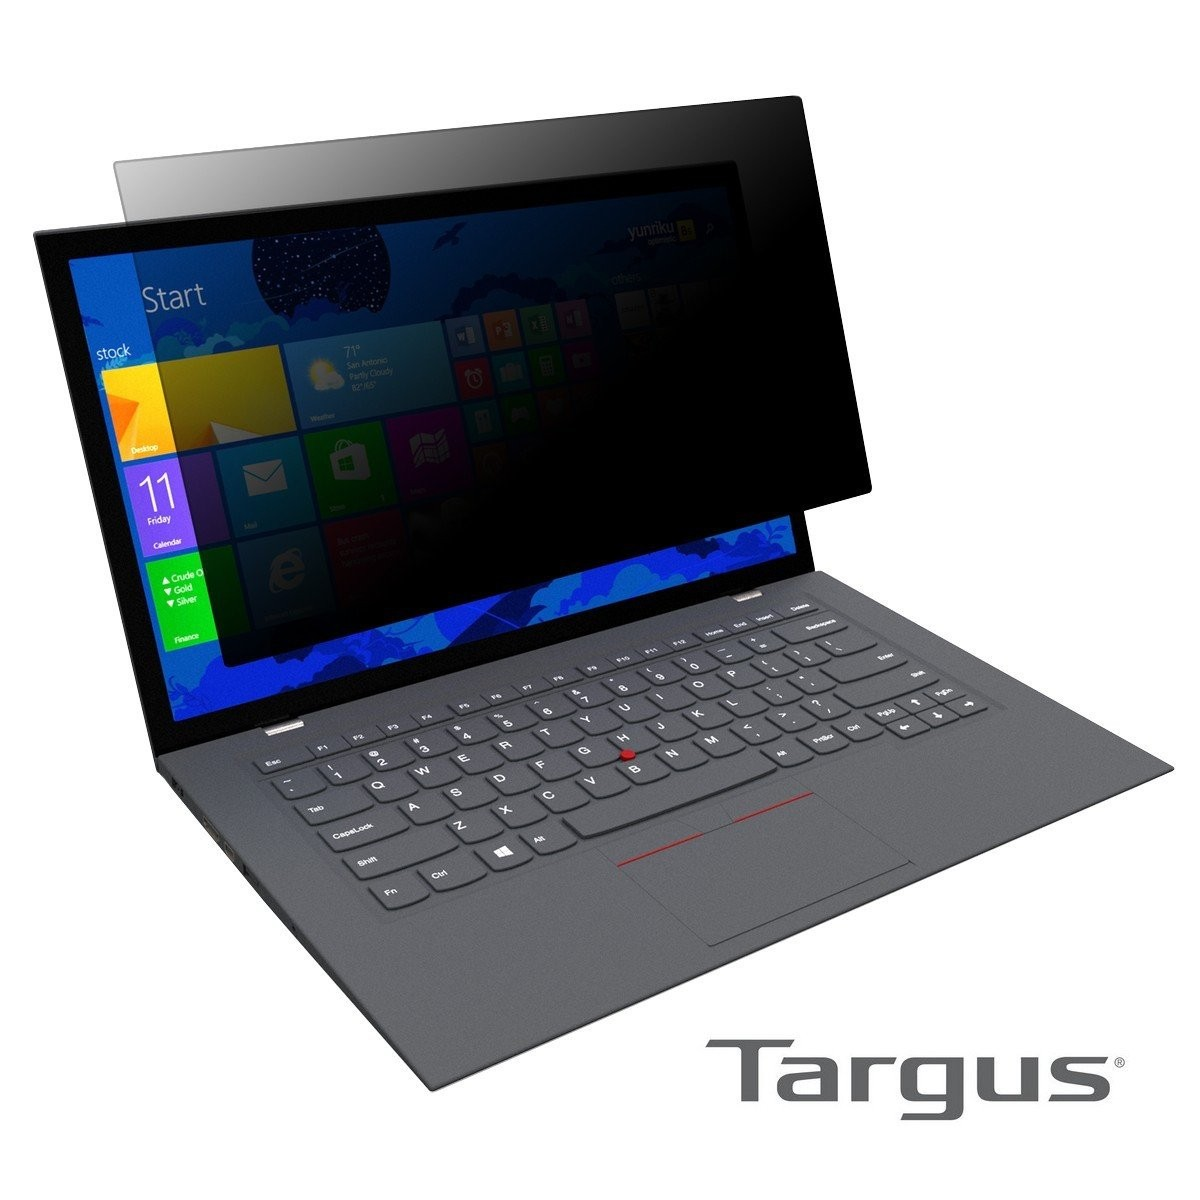 Targus - ASF141 - Privacy Screen Filter